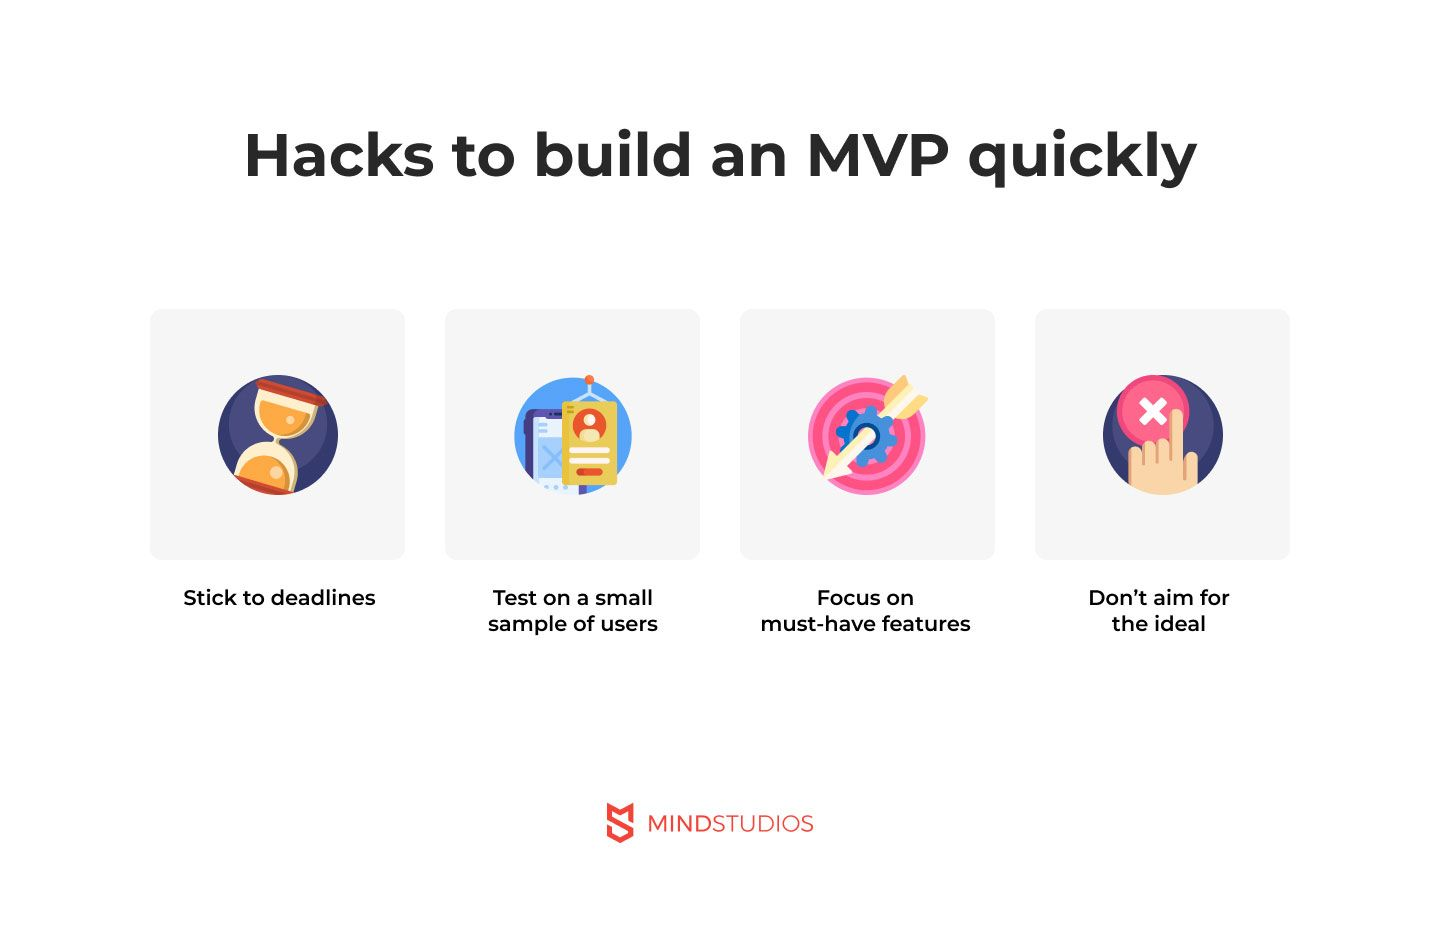 Hacks to build an MVP quickly